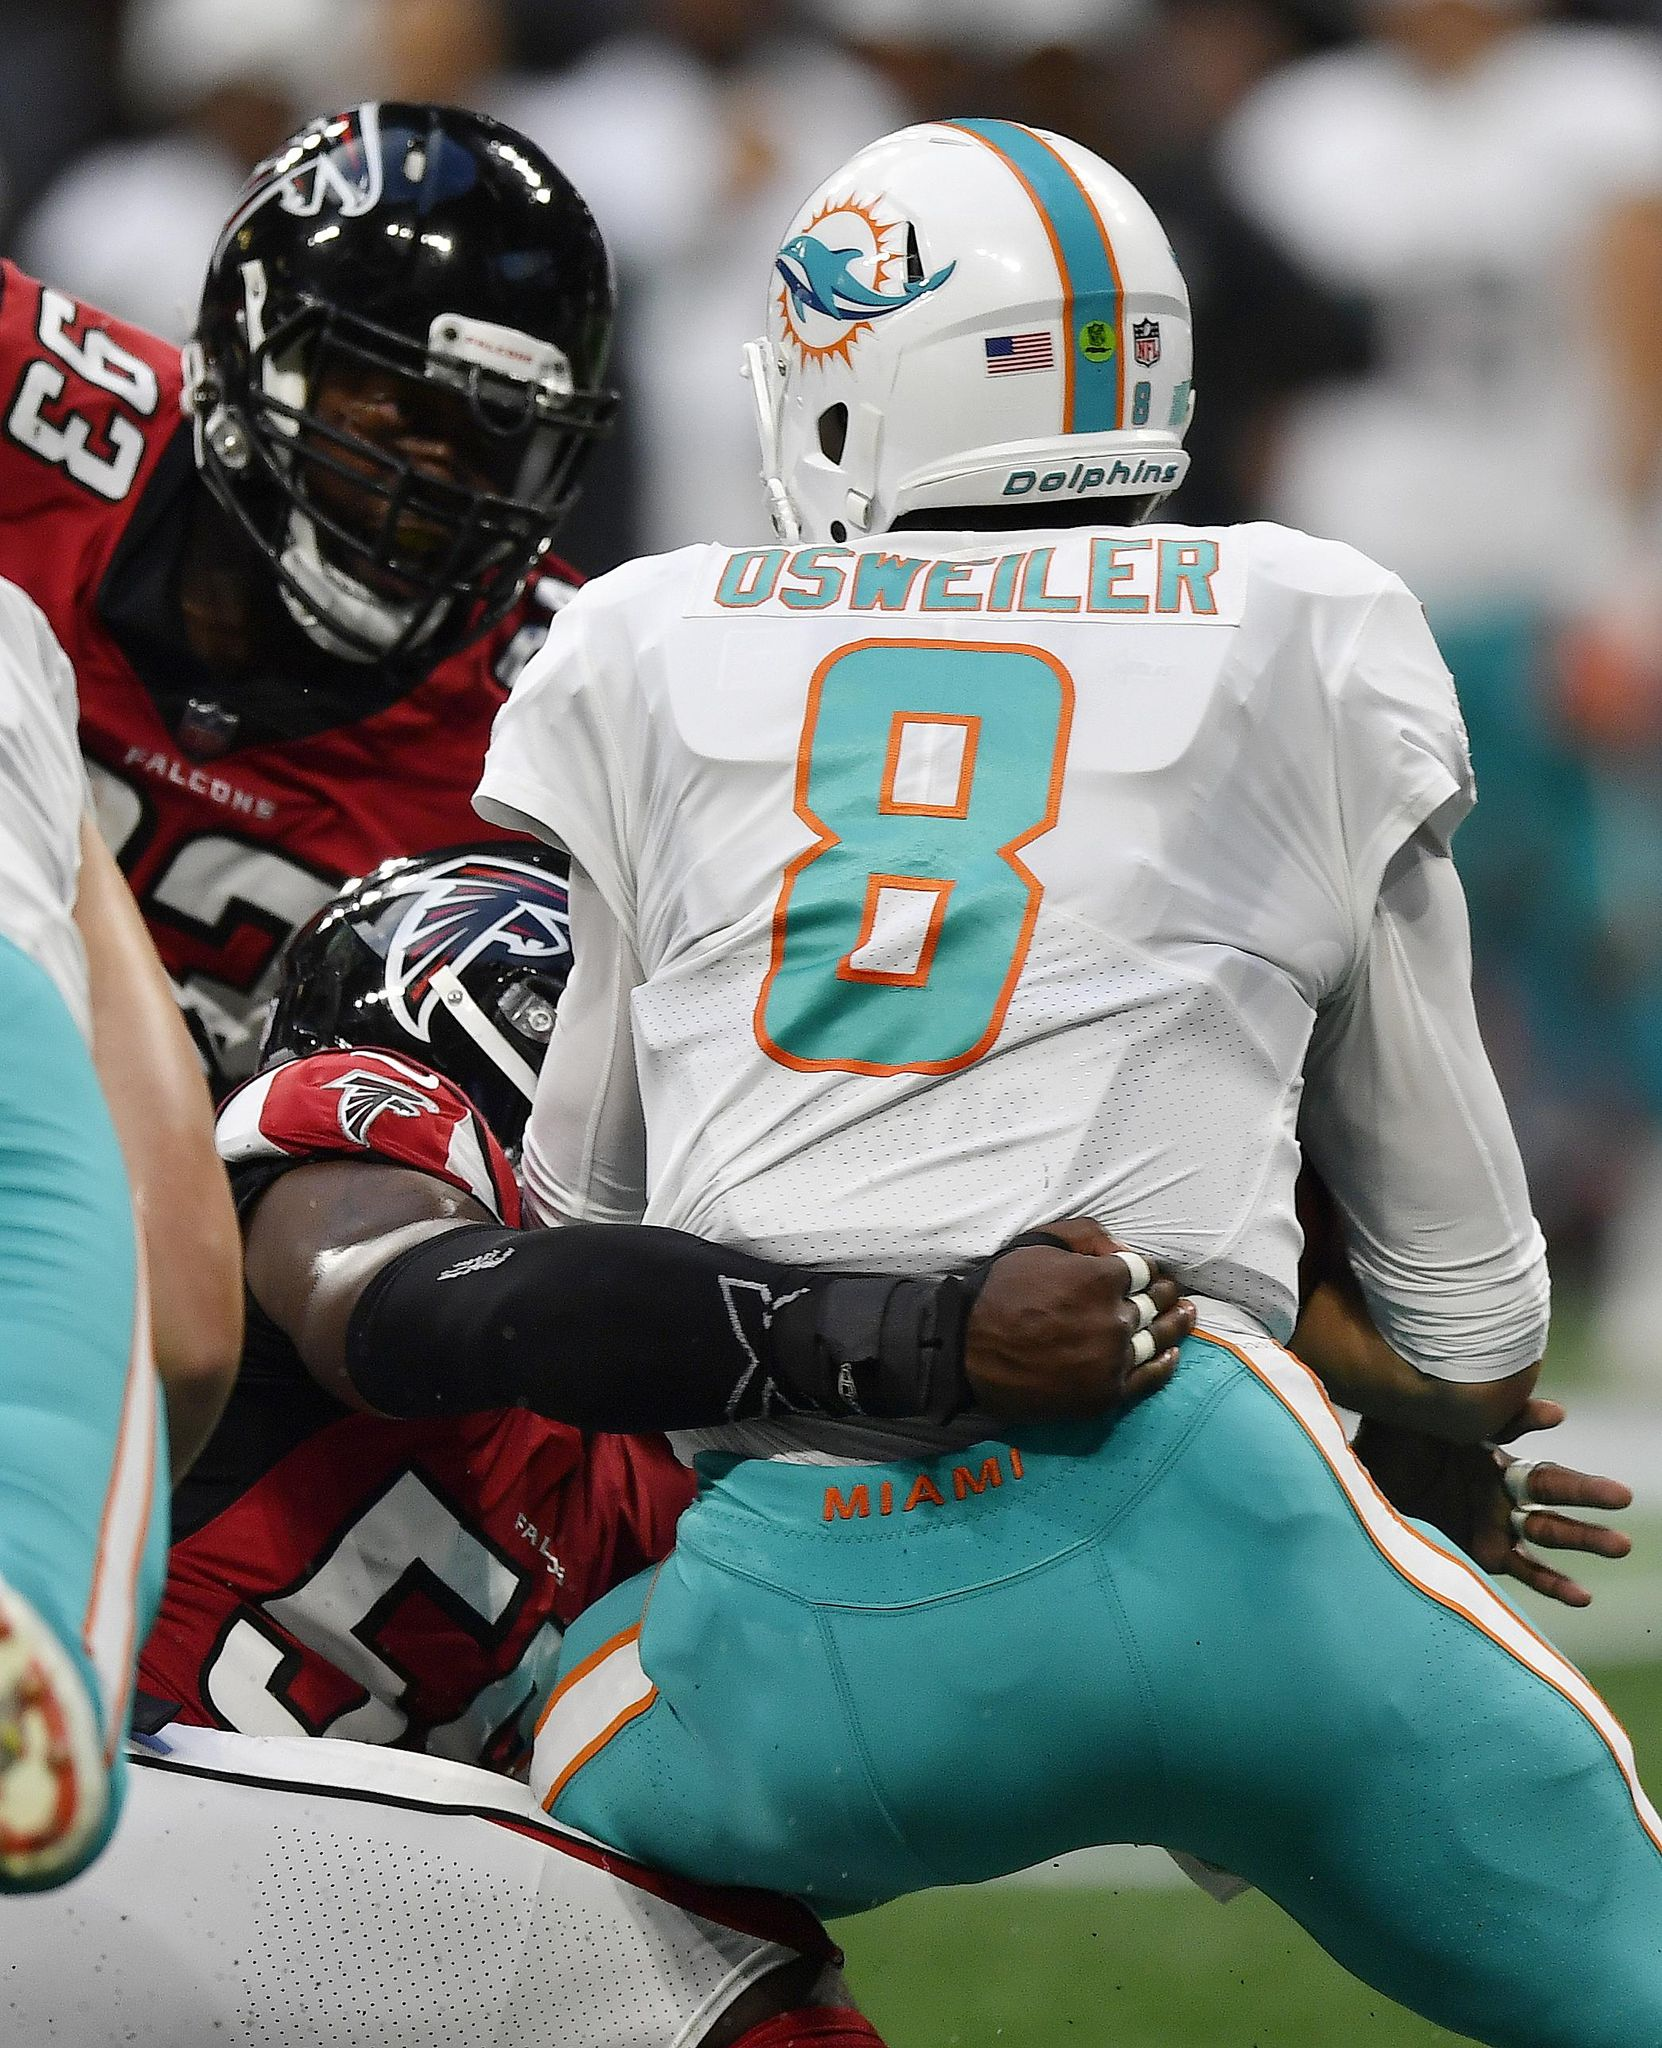 Dolphins_falcons_football_02882_s1662x2048